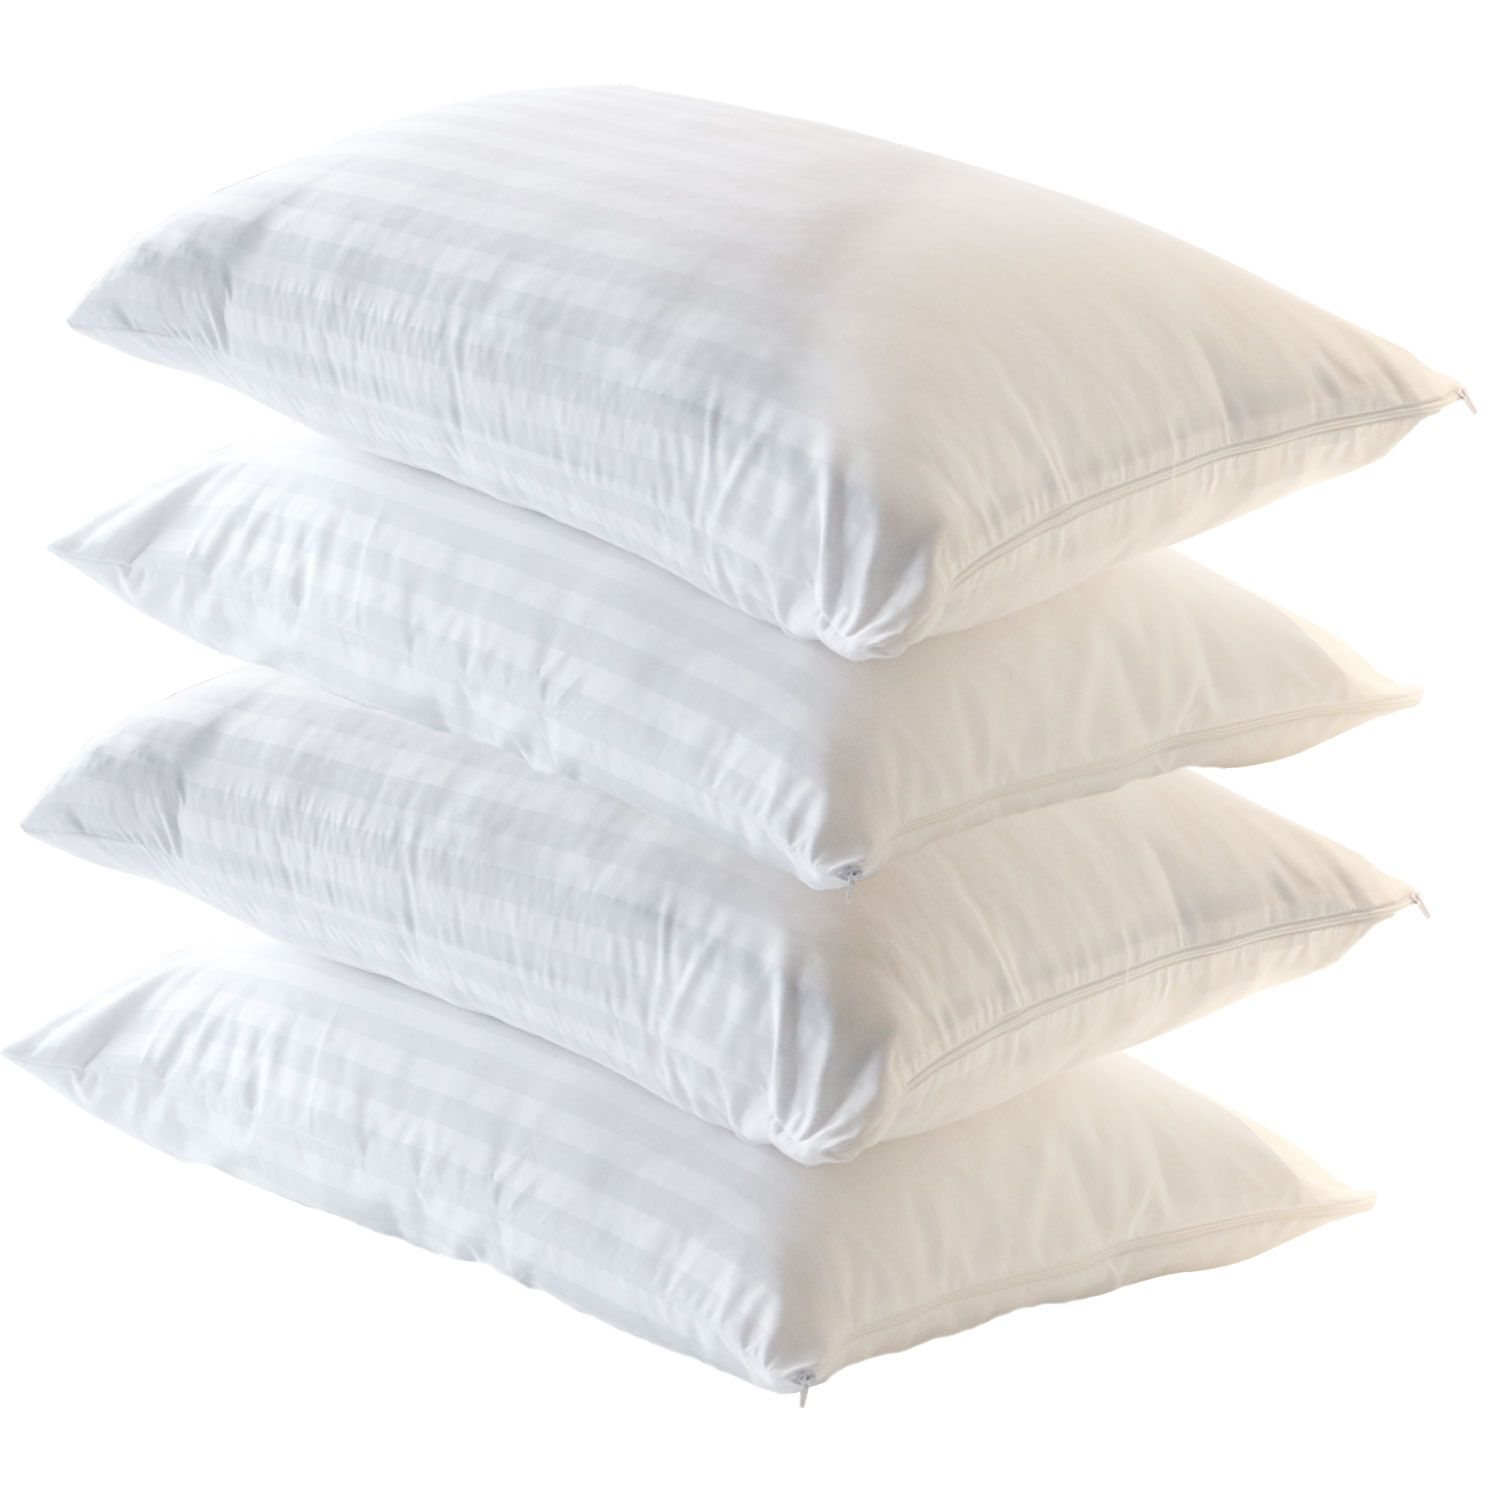 Cooling Pillowcase 2 Pack Striped Pillow Cases Covers In 2020 Stripe Pillow Bed Pillows Pillow Cases